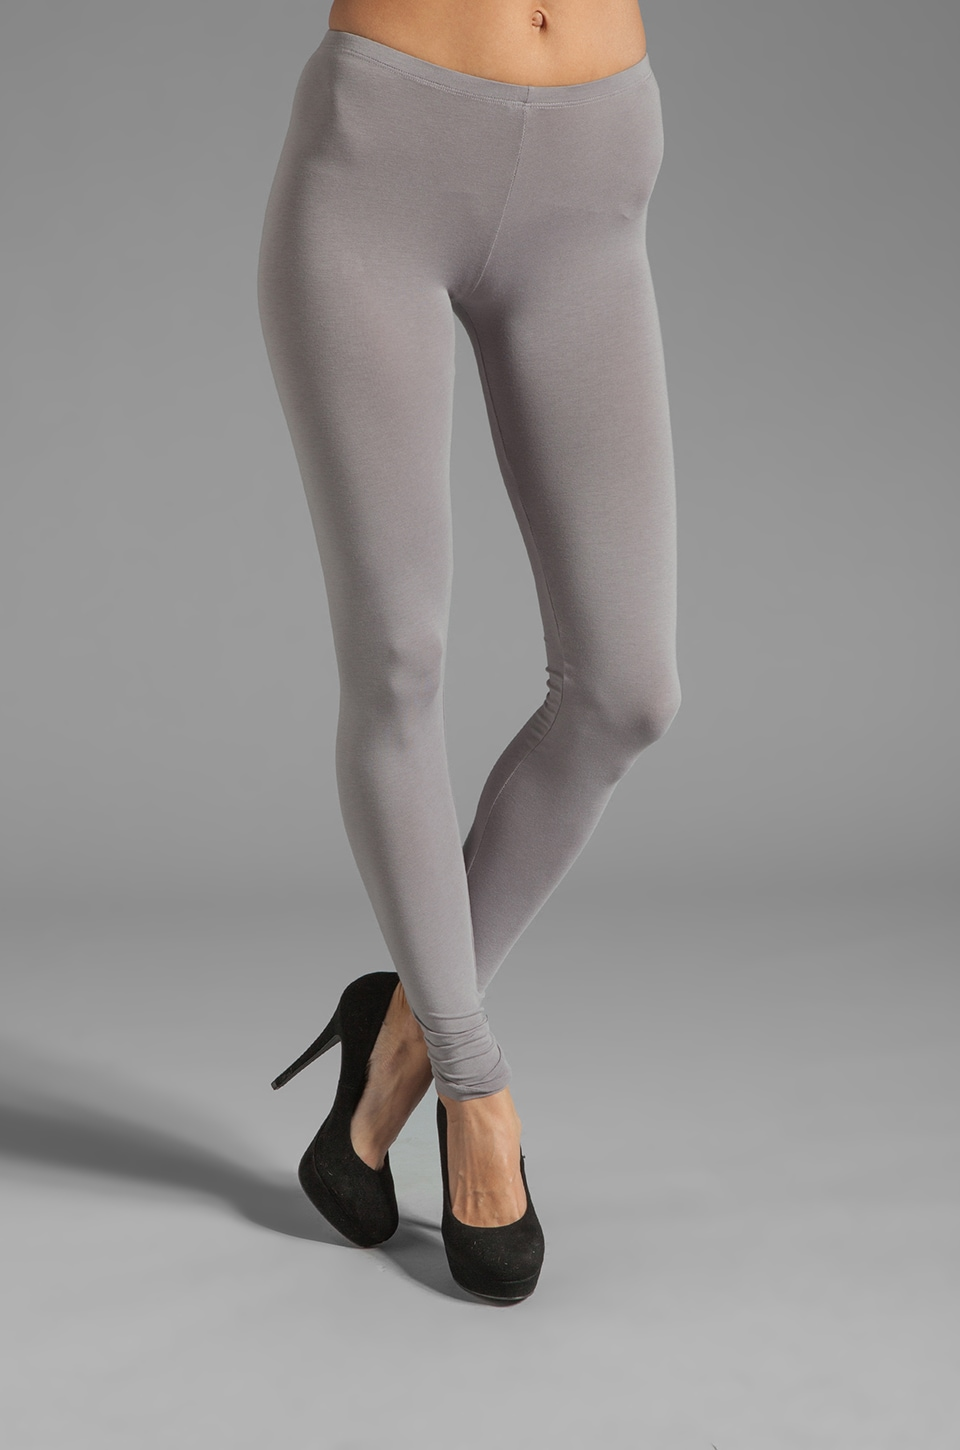 Splendid Modal Lycra Leggings in Storm